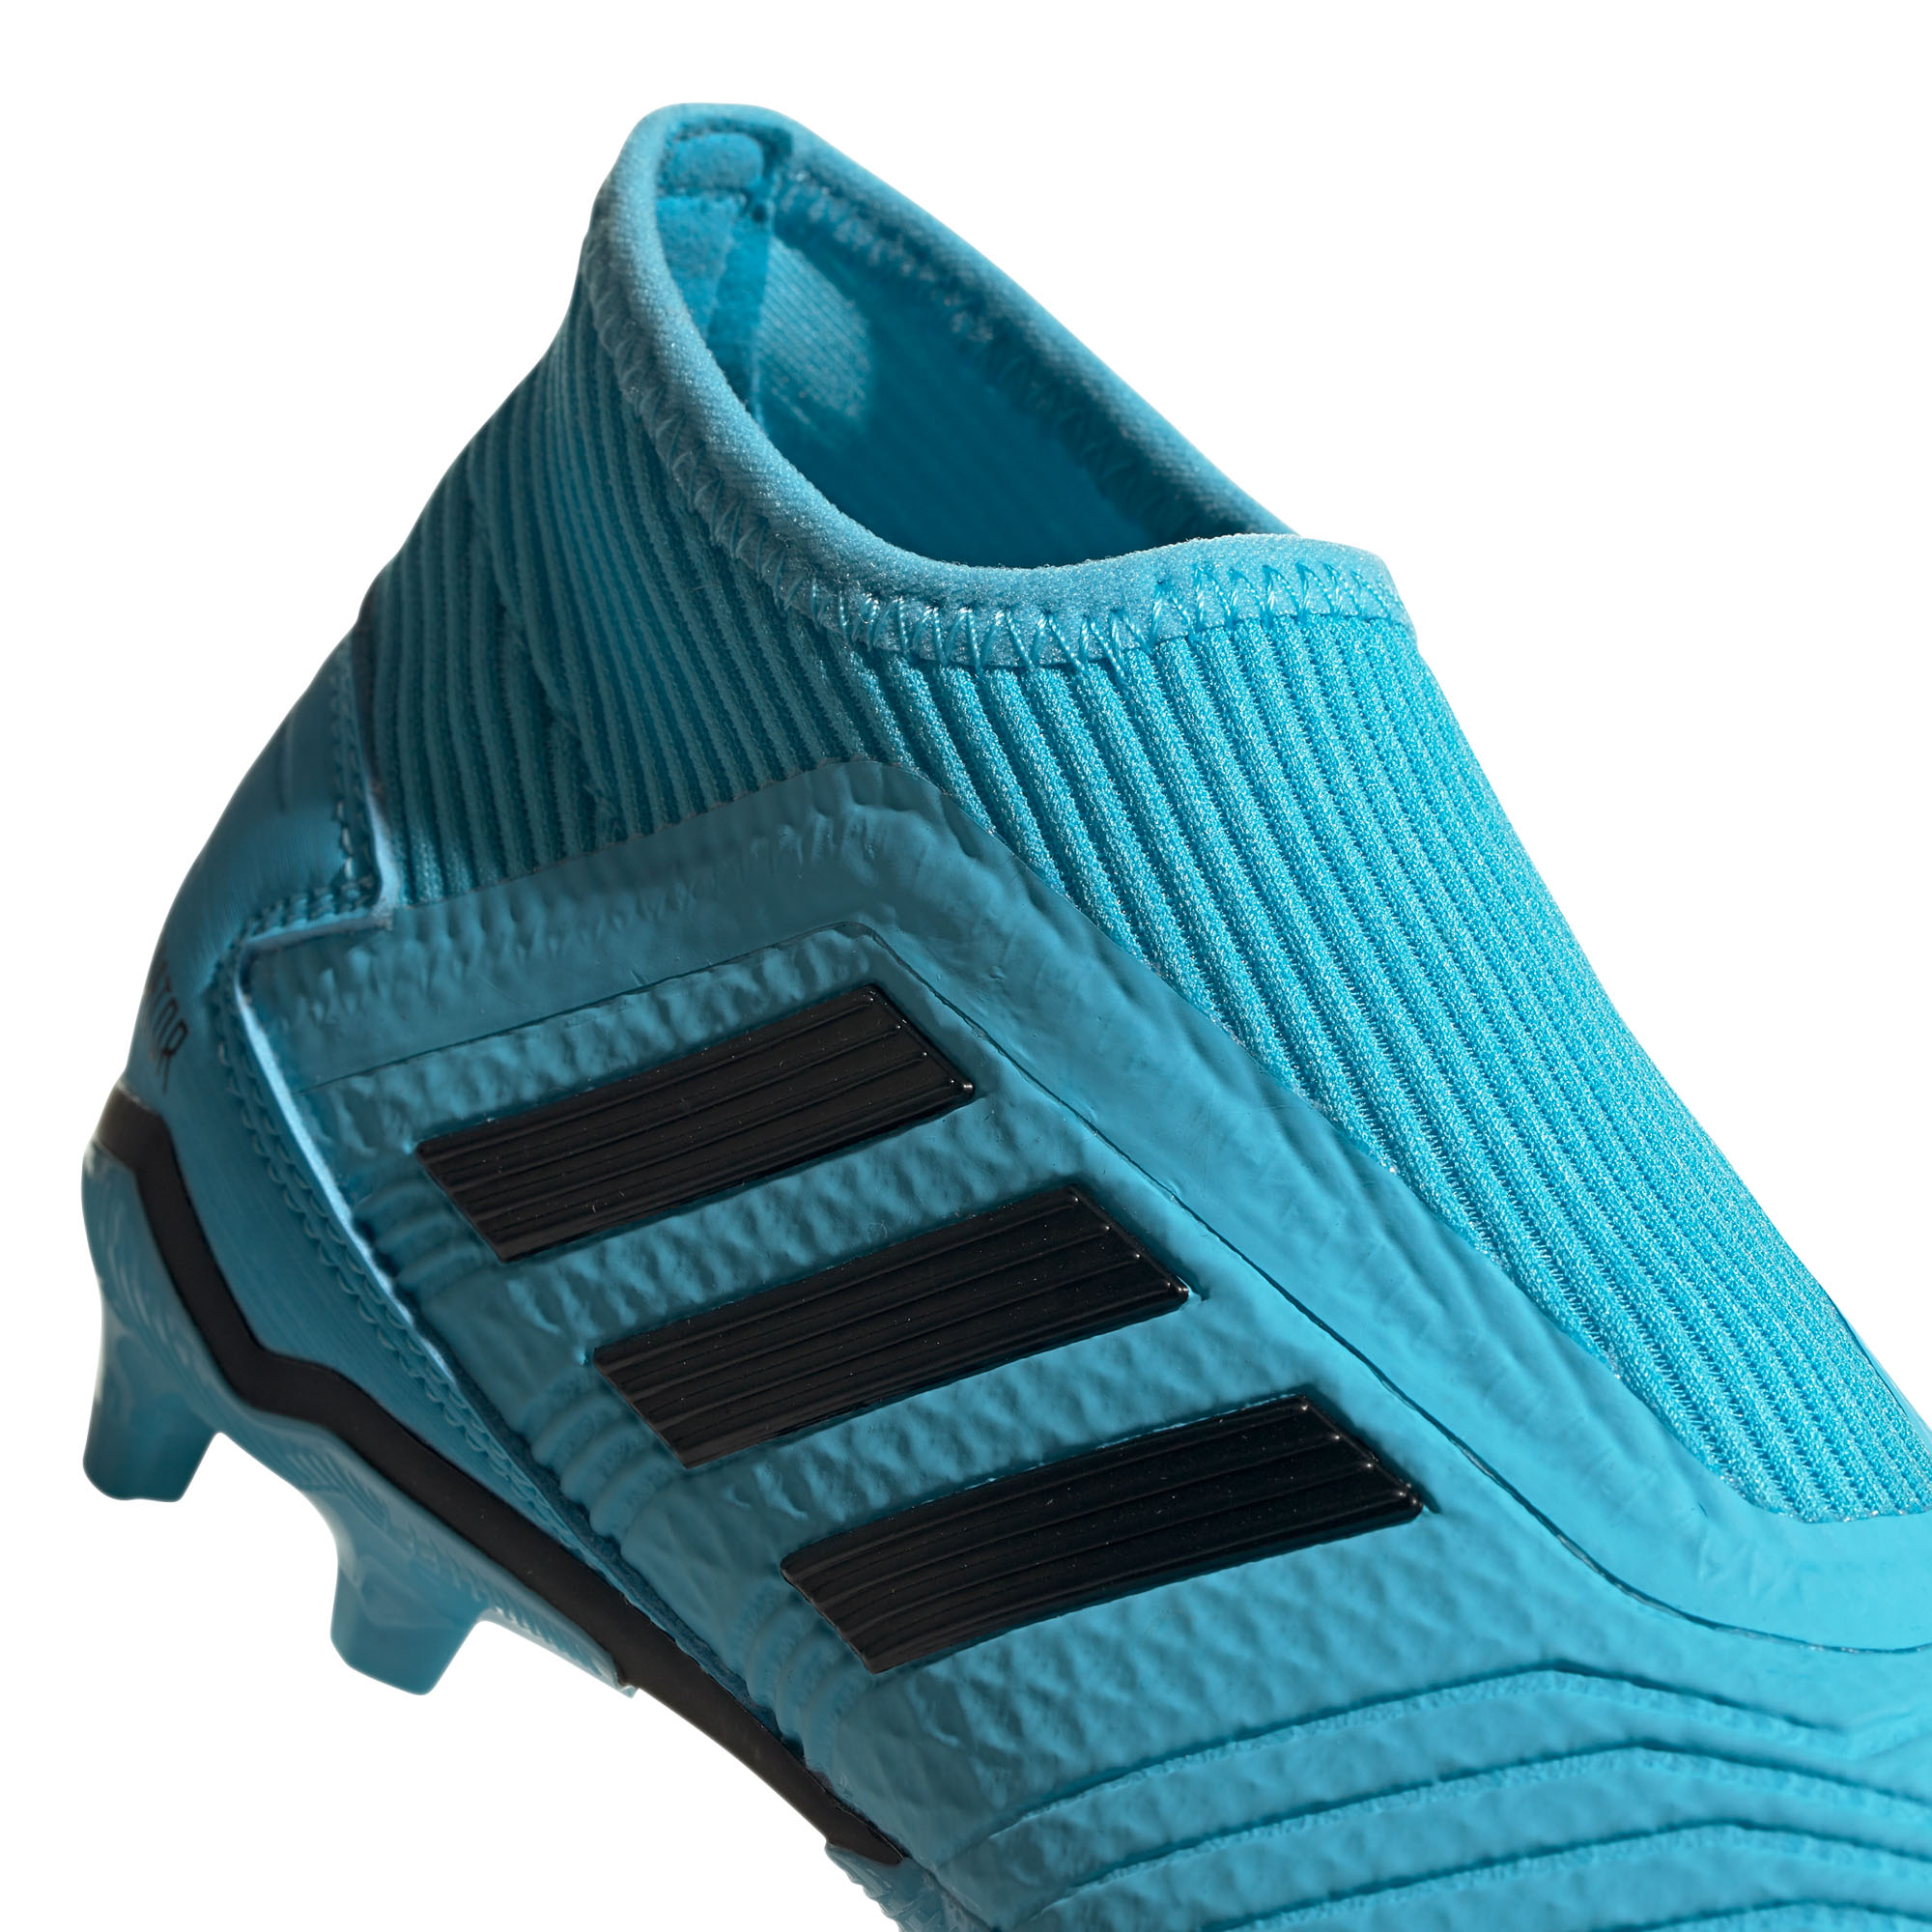 Details about adidas Predator 19.3 Laceless FG Firm Ground Kids Football Boot CyanBlack